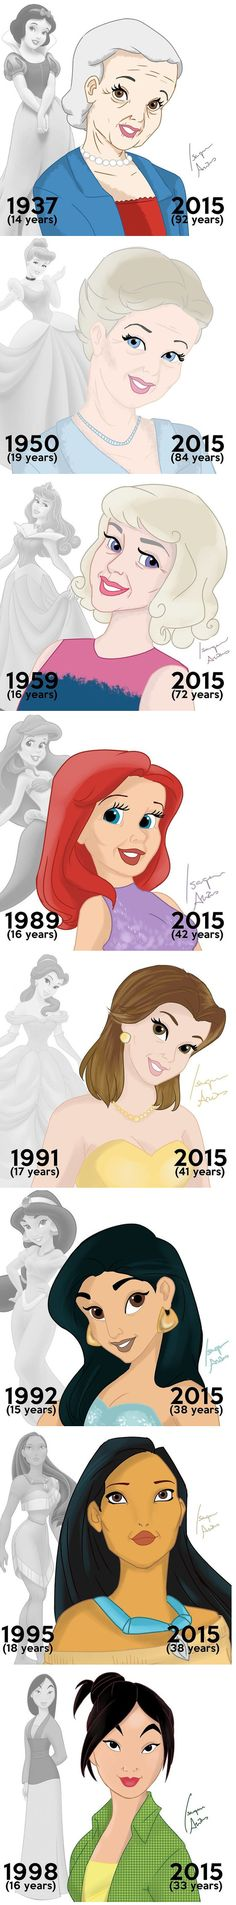 Disney Princesses - Then & Now by Brazilian artist Isaque Areas~they all aged really well Disney Pixar, Walt Disney, Disney Jokes, Funny Disney Memes, Disney Facts, Cute Disney, Disney And Dreamworks, Disney Cartoons, Disney Magic